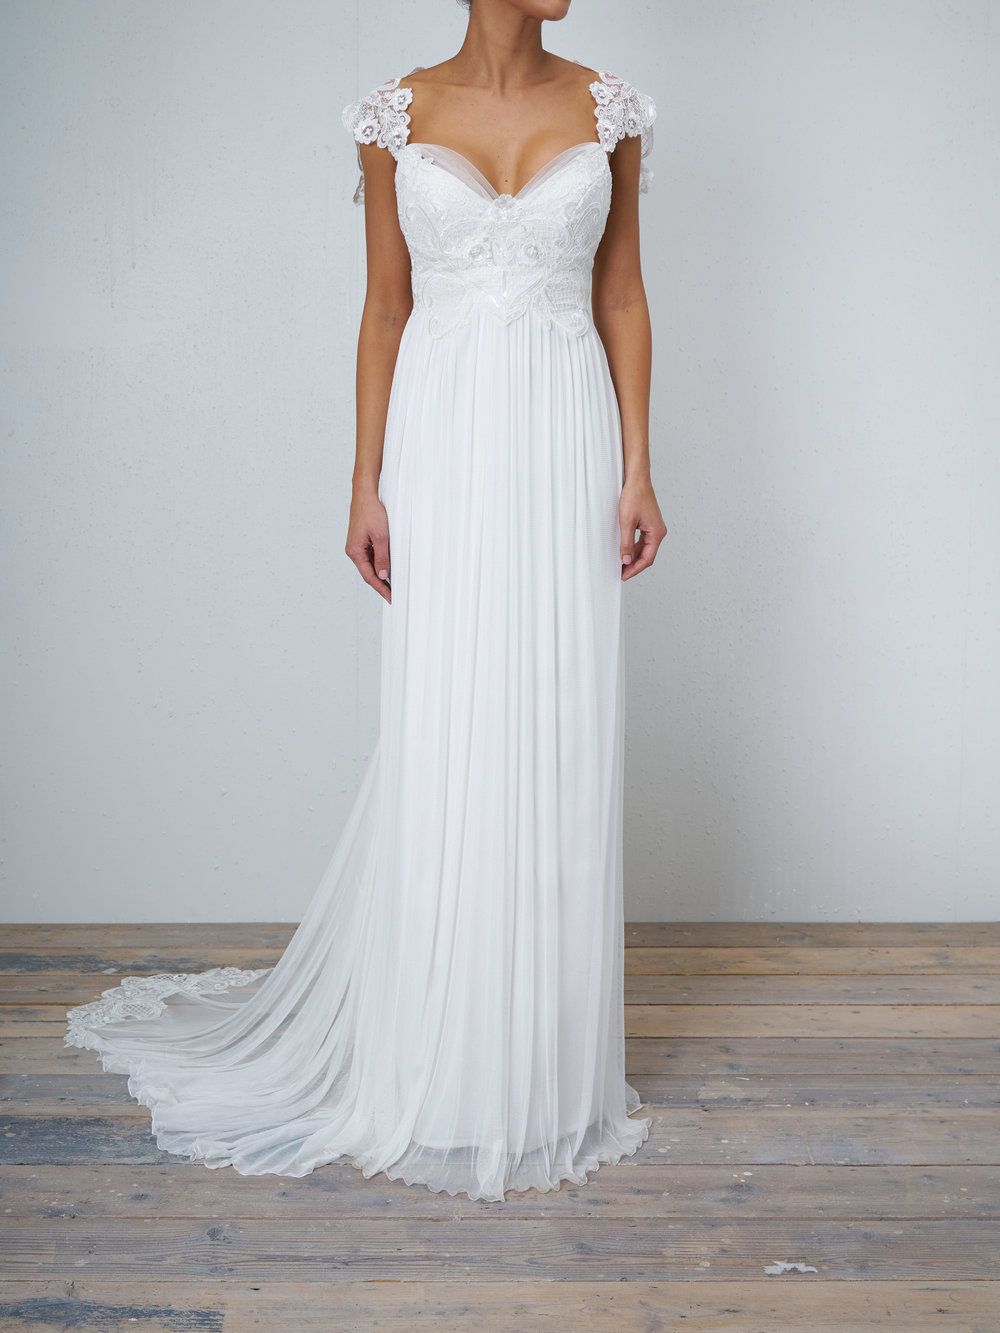 Savannah Dress5693.jpg